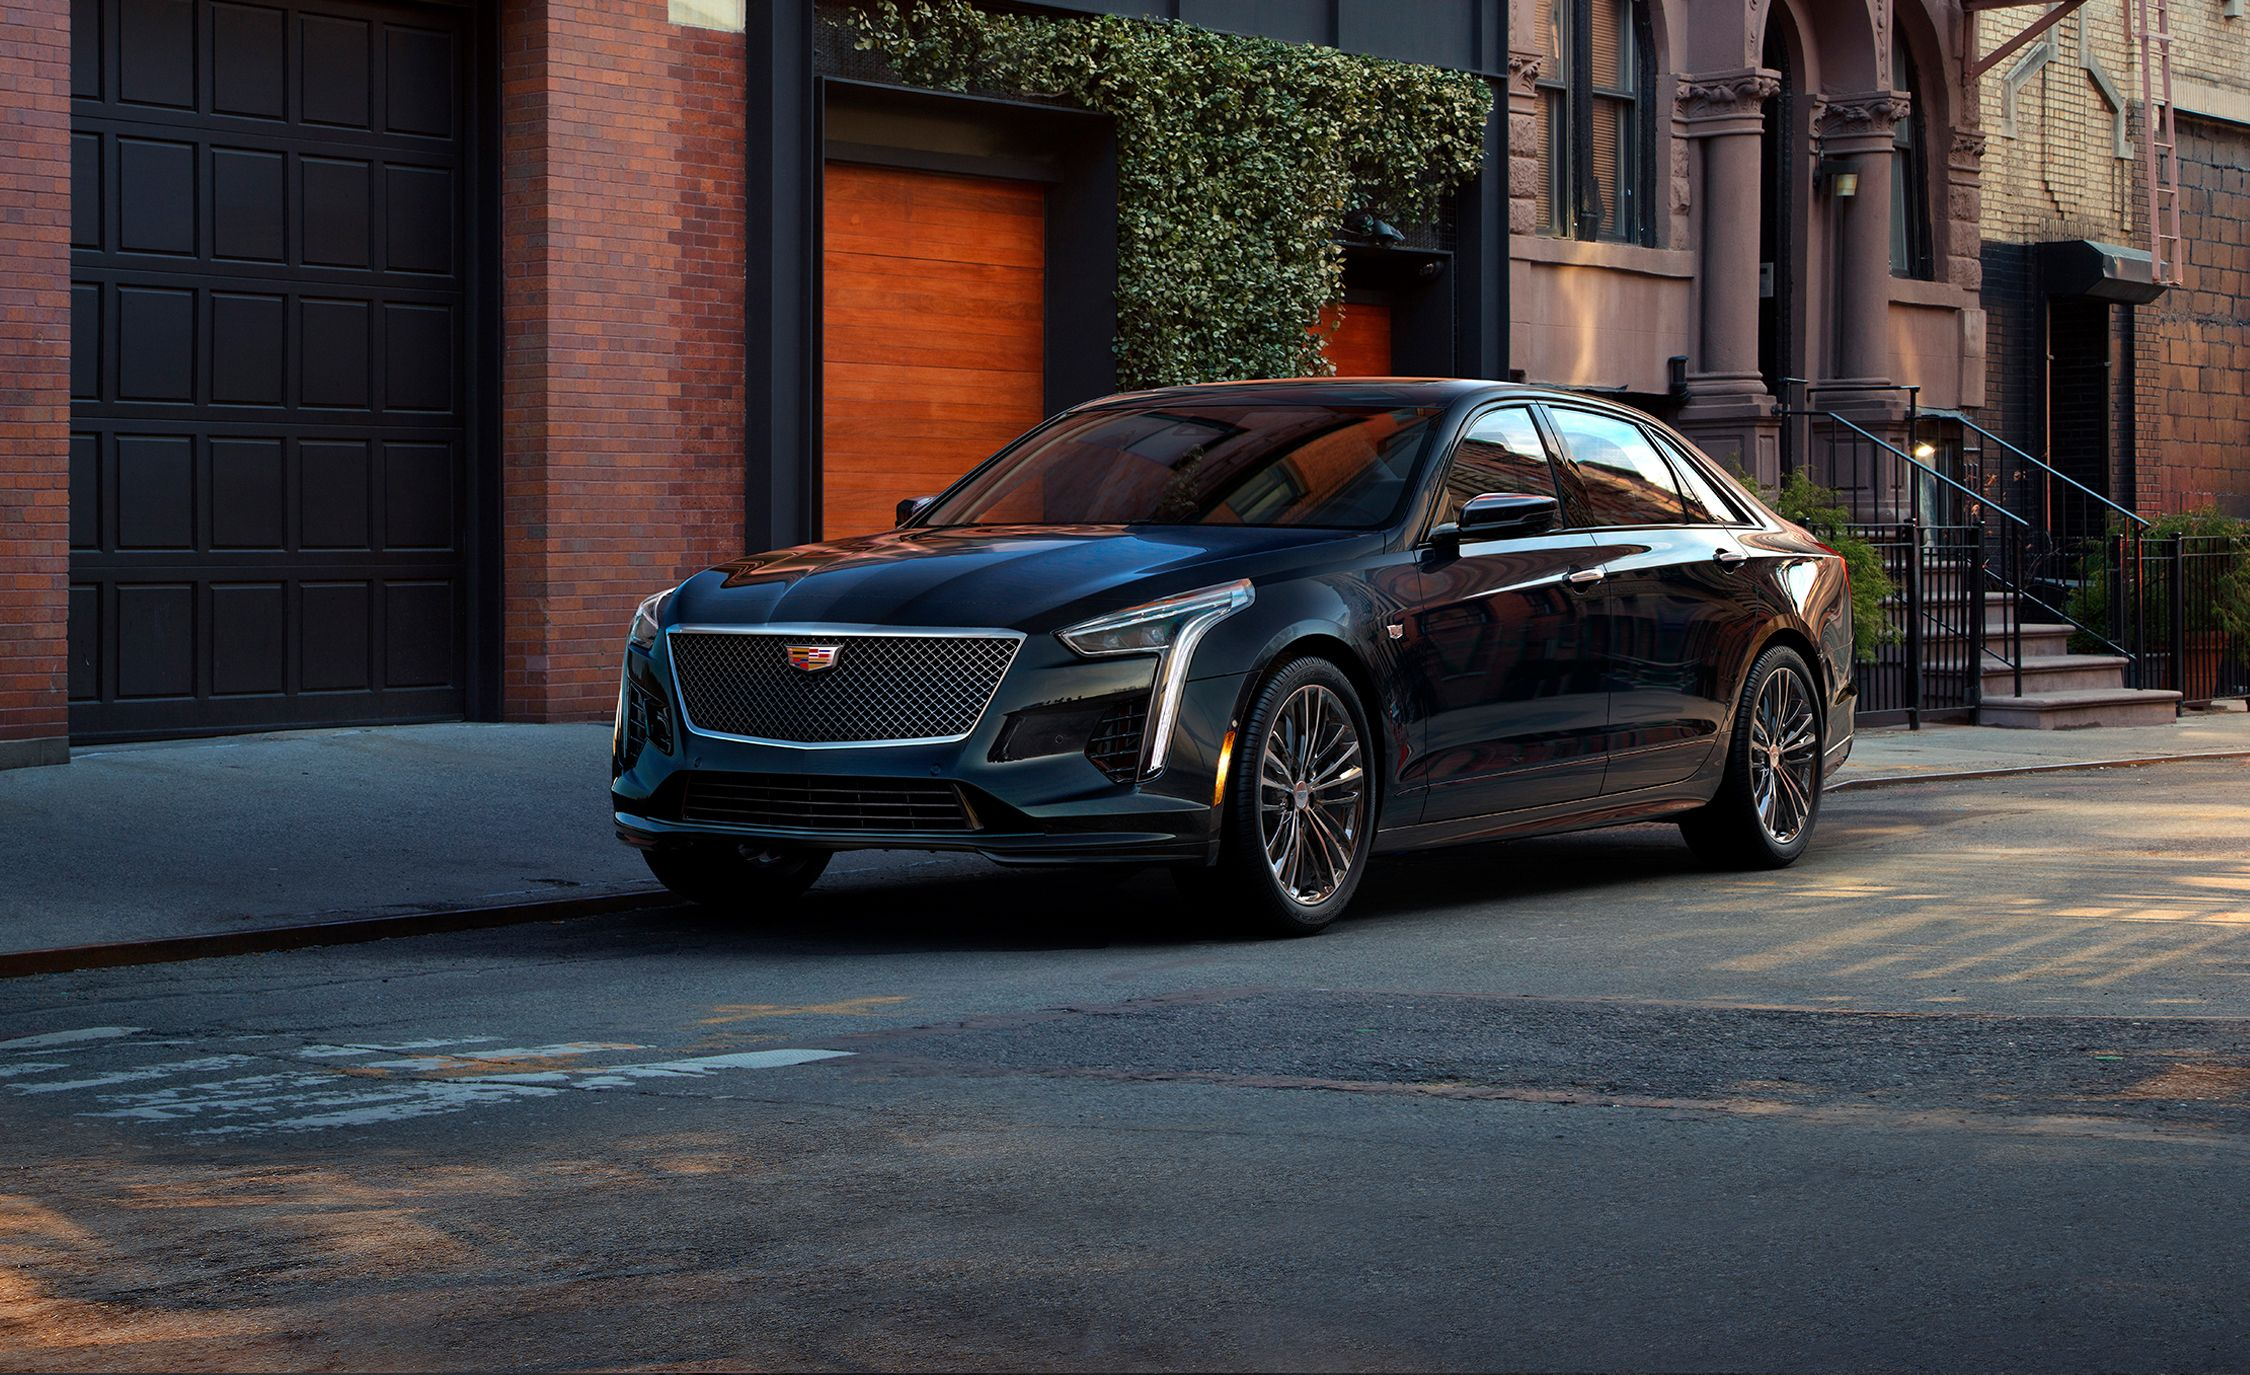 2019 Cadillac Ct6 V Price Announced New V 8 Luxury Sedan